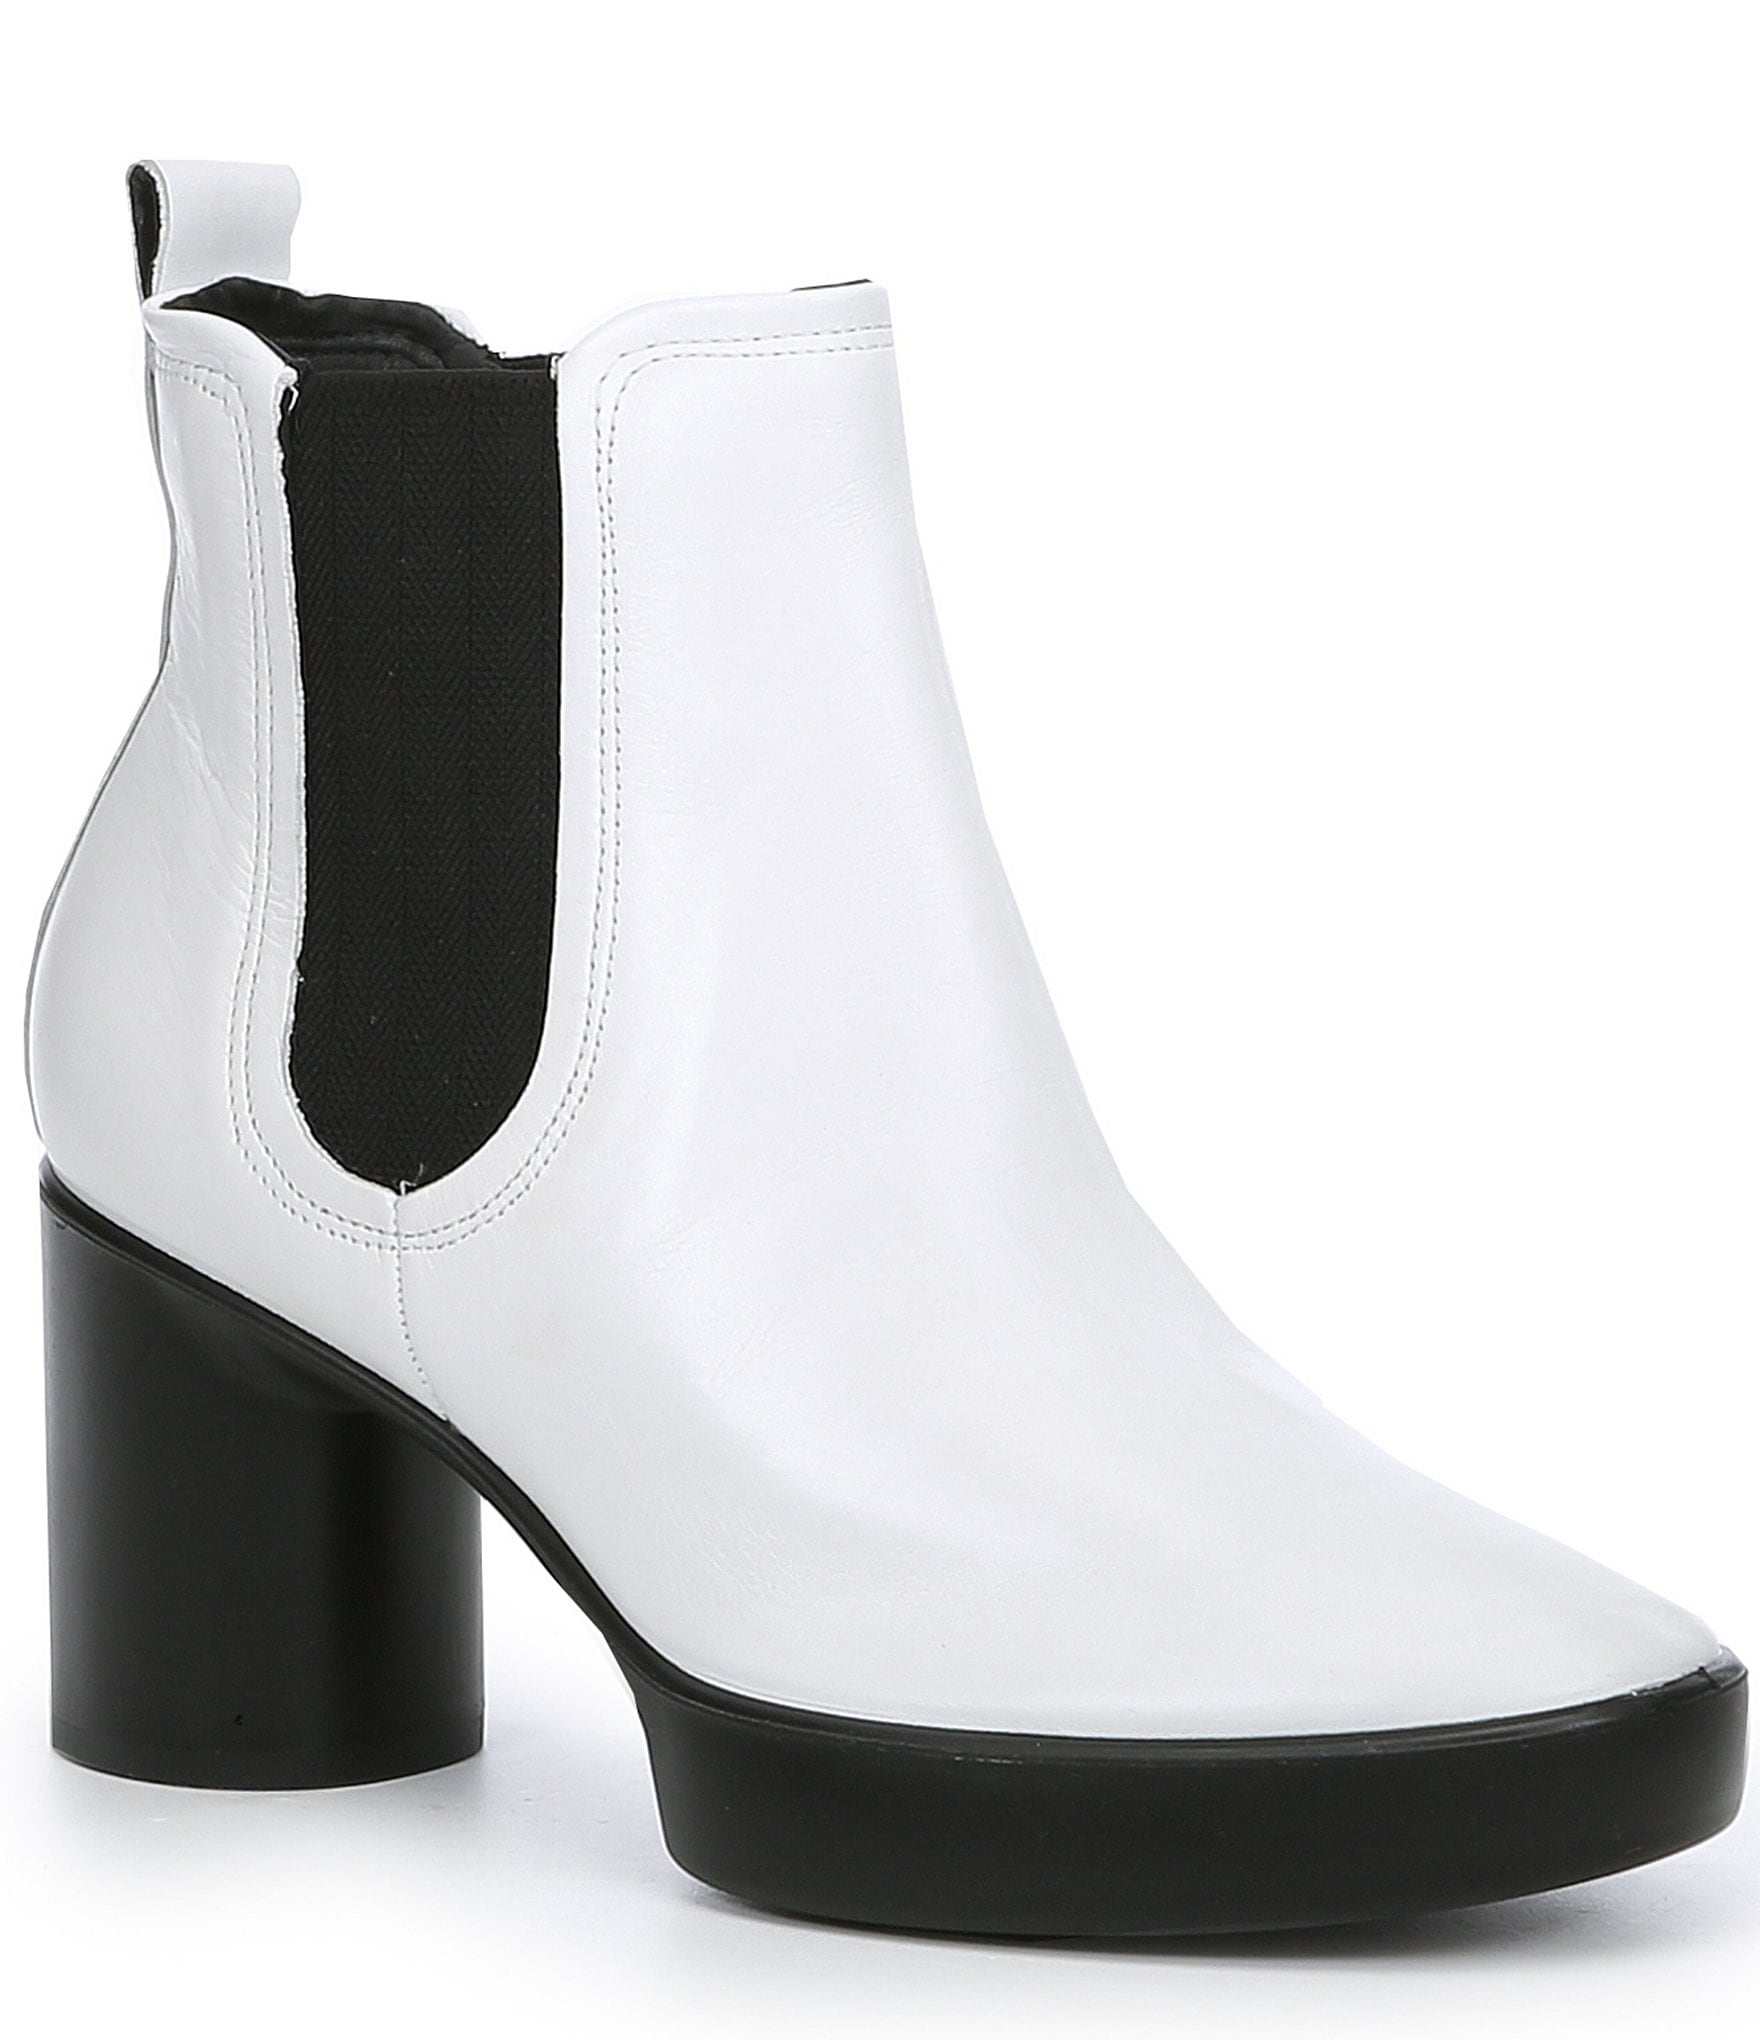 Shape Sculpted Motion 55 Chelsea Leather Block Heel Ankle Boots by Ecco